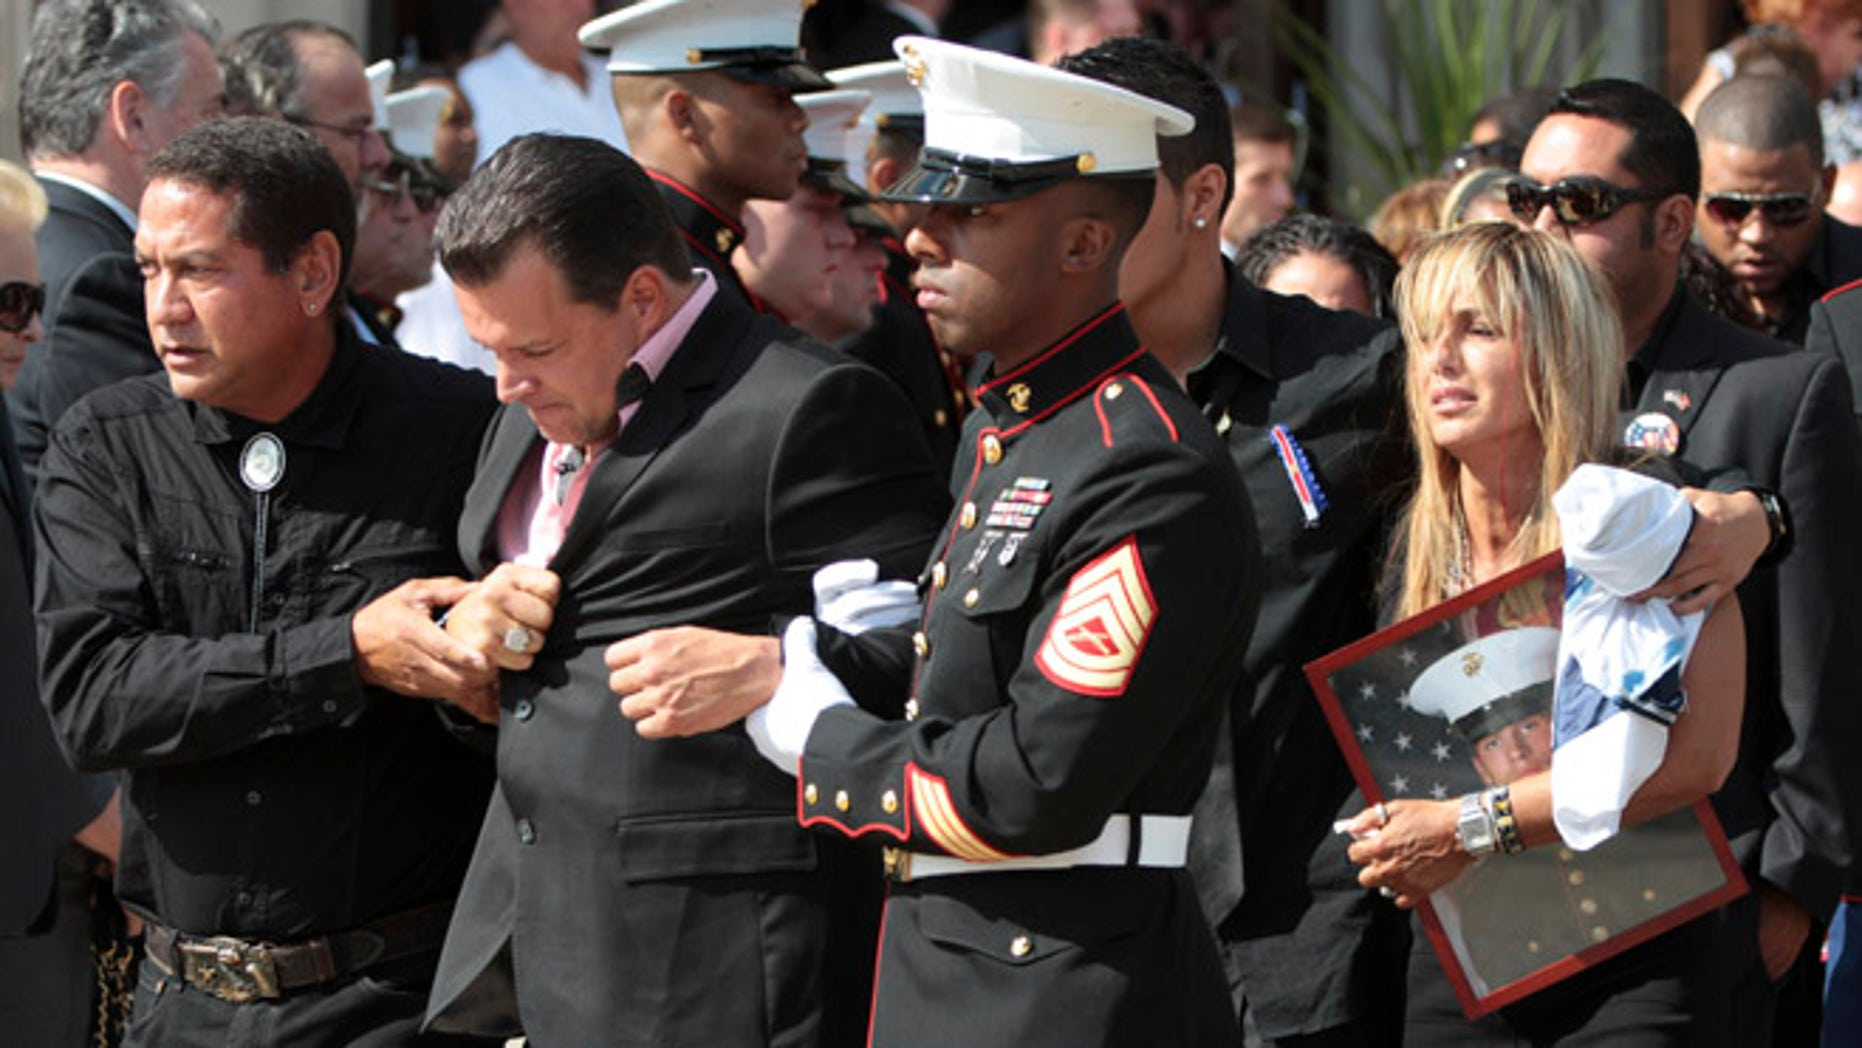 Aug. 18, 2012: Lance Cpl. GregBuckleyJr.'s father Greg, foreground and mother Marina are escorted from St. Agnes Cathedral after his funeral Mass in Rockville Center, N.Y..